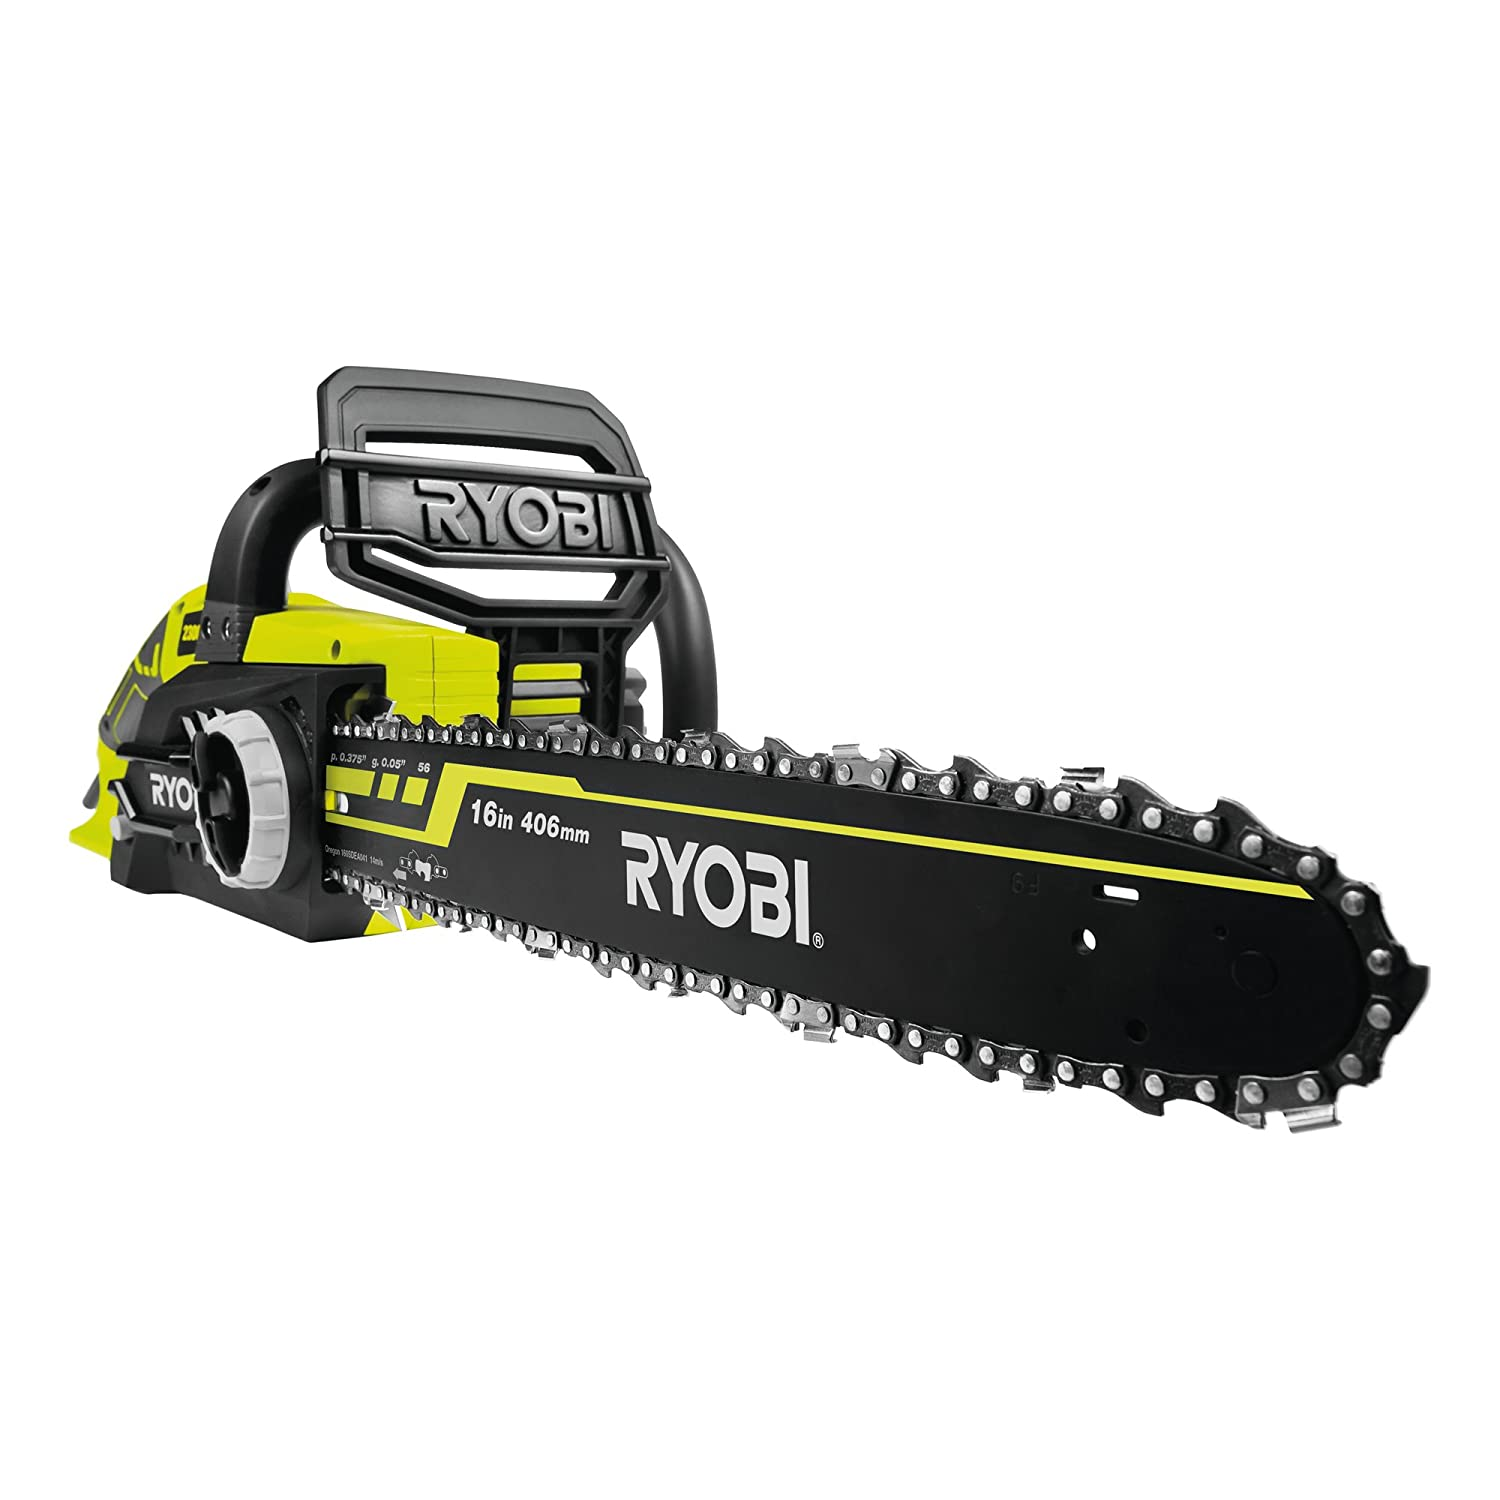 Ryobi rcs2340 chainsaw 2300 w greenblack amazon diy ryobi rcs2340 chainsaw 2300 w greenblack amazon diy tools keyboard keysfo Gallery